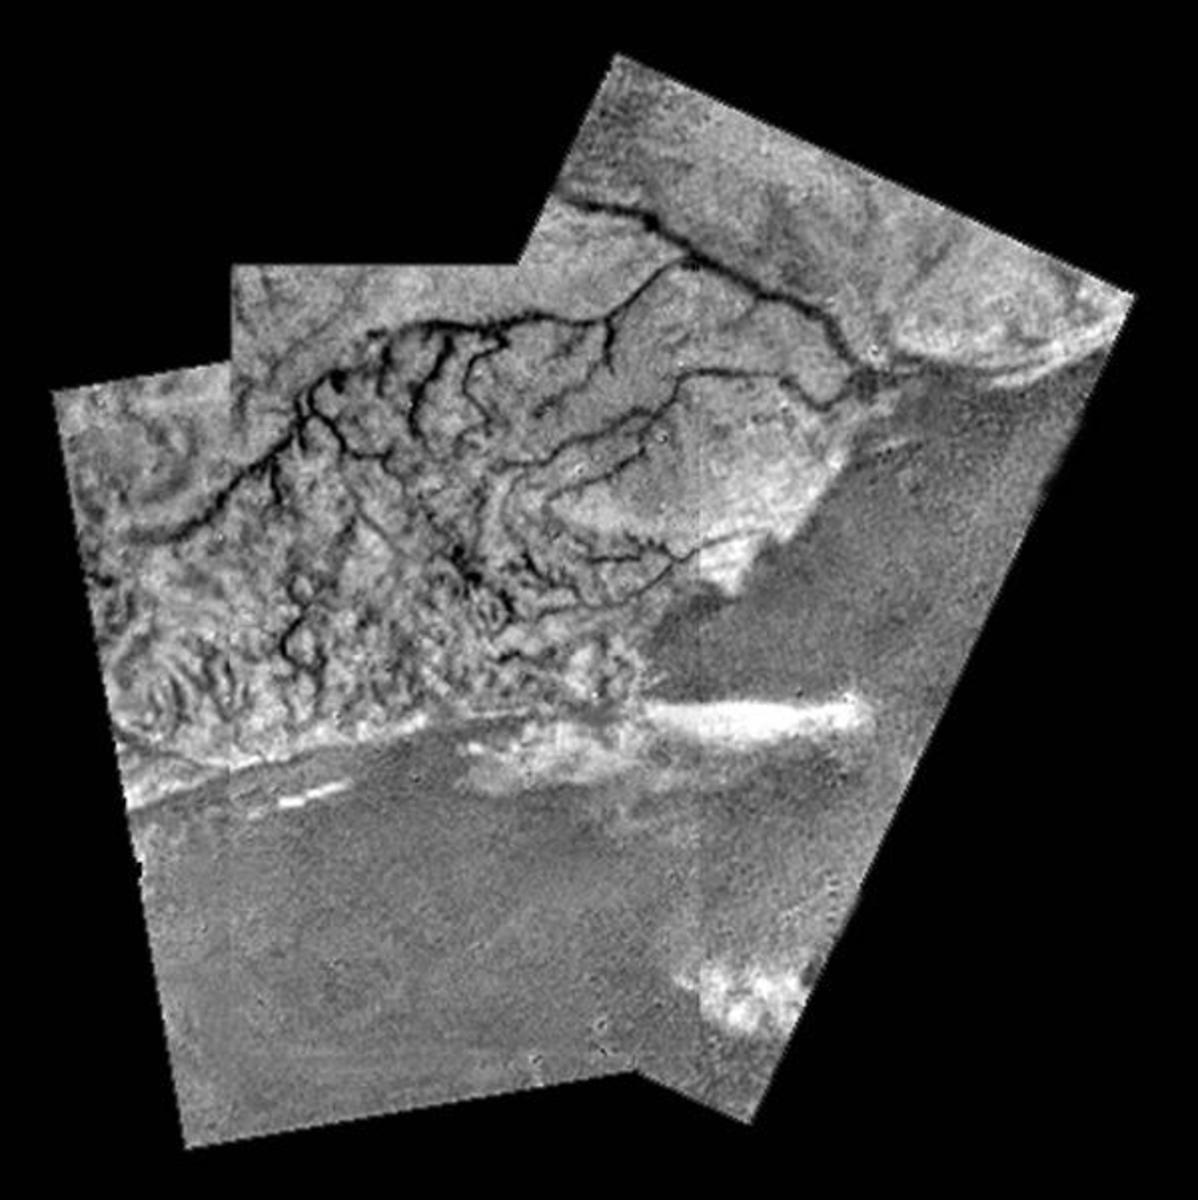 River channels on Titan, and lowlands... are those dunes, or a lake? The amazing thing about Titan is that once you penetrate the clouds with radar (here) or infrared, it looks far more Earthlike than Mars.